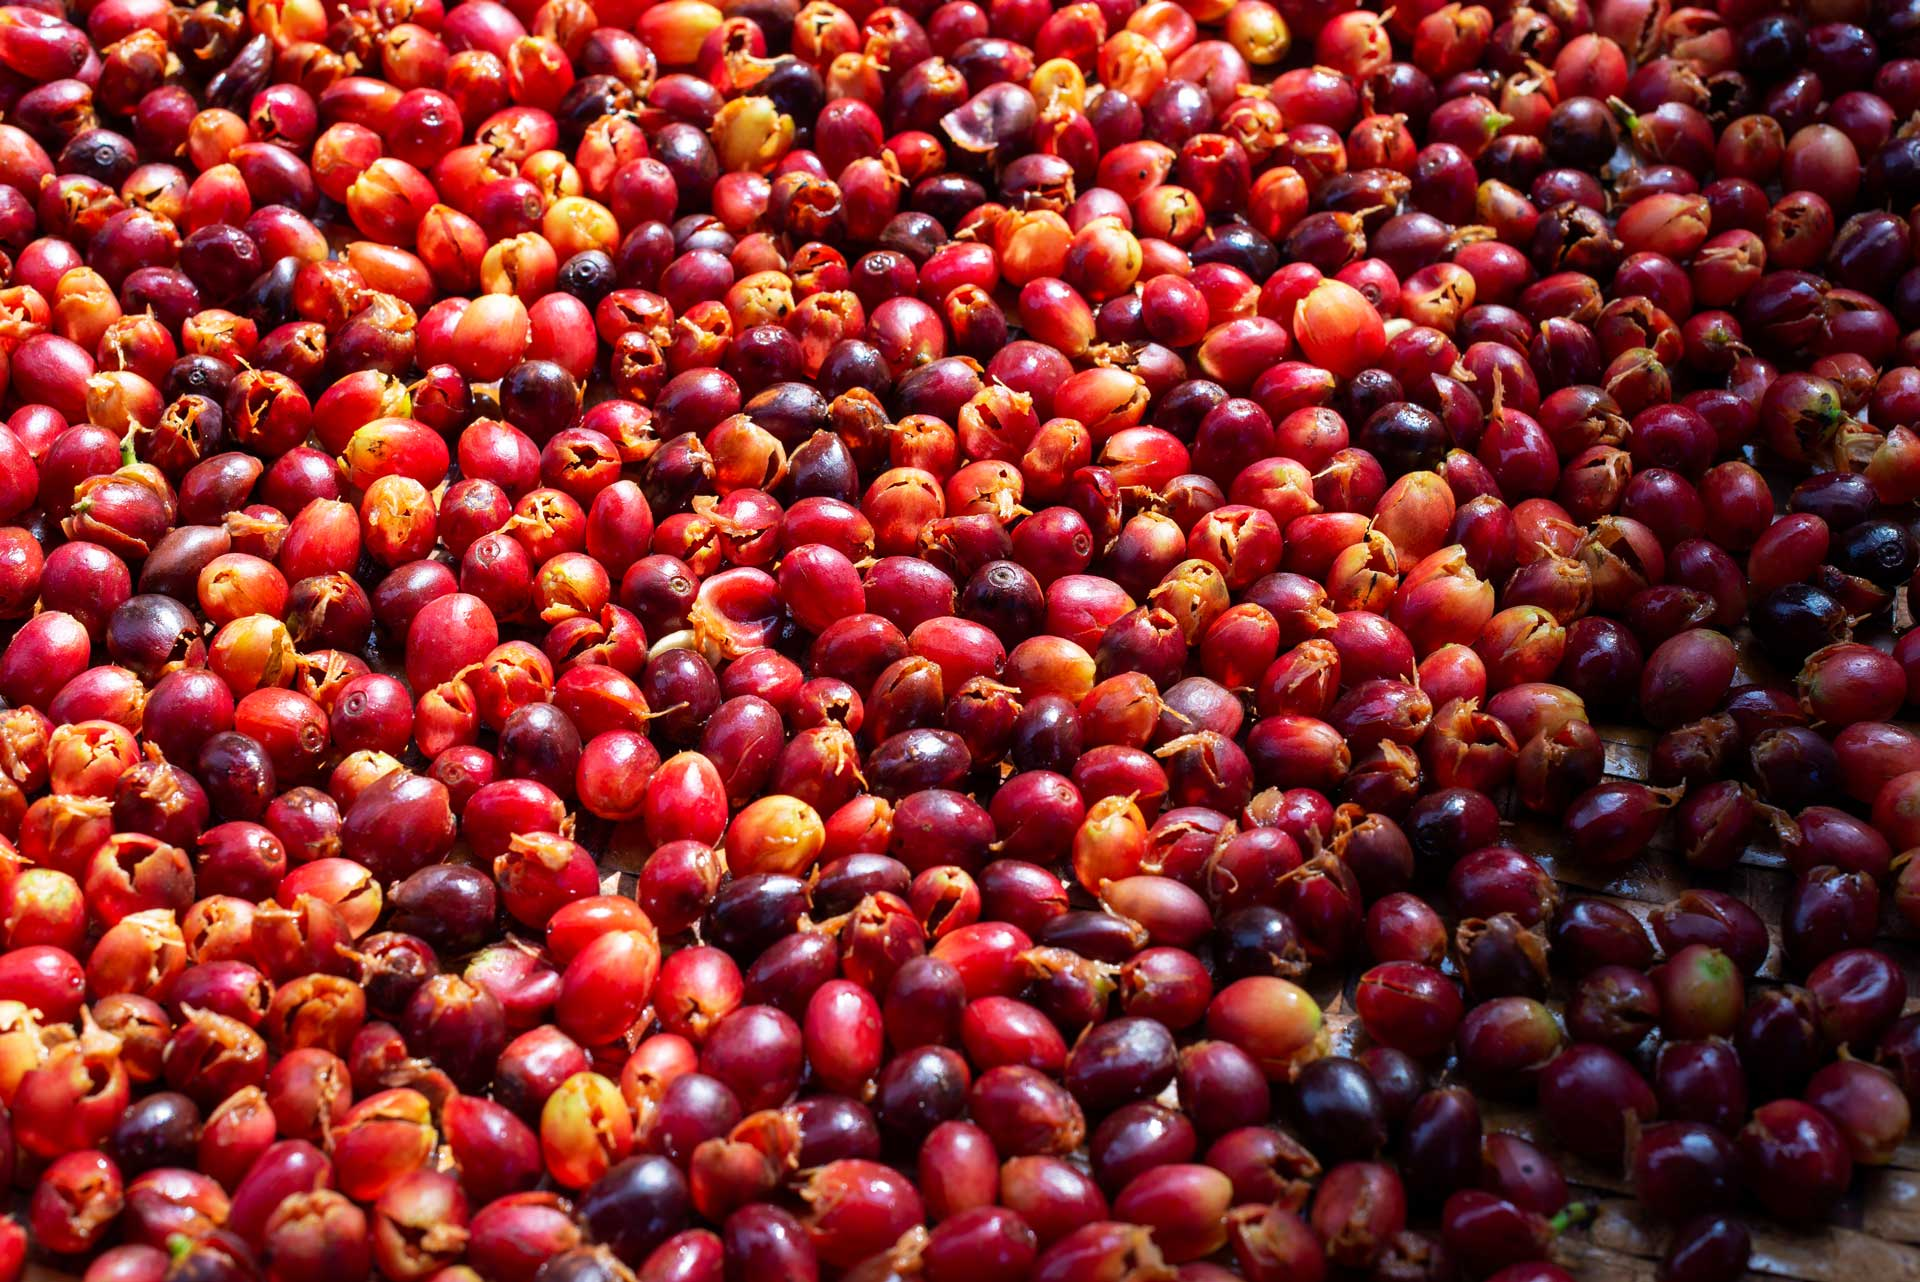 Pitted coffee cherries.